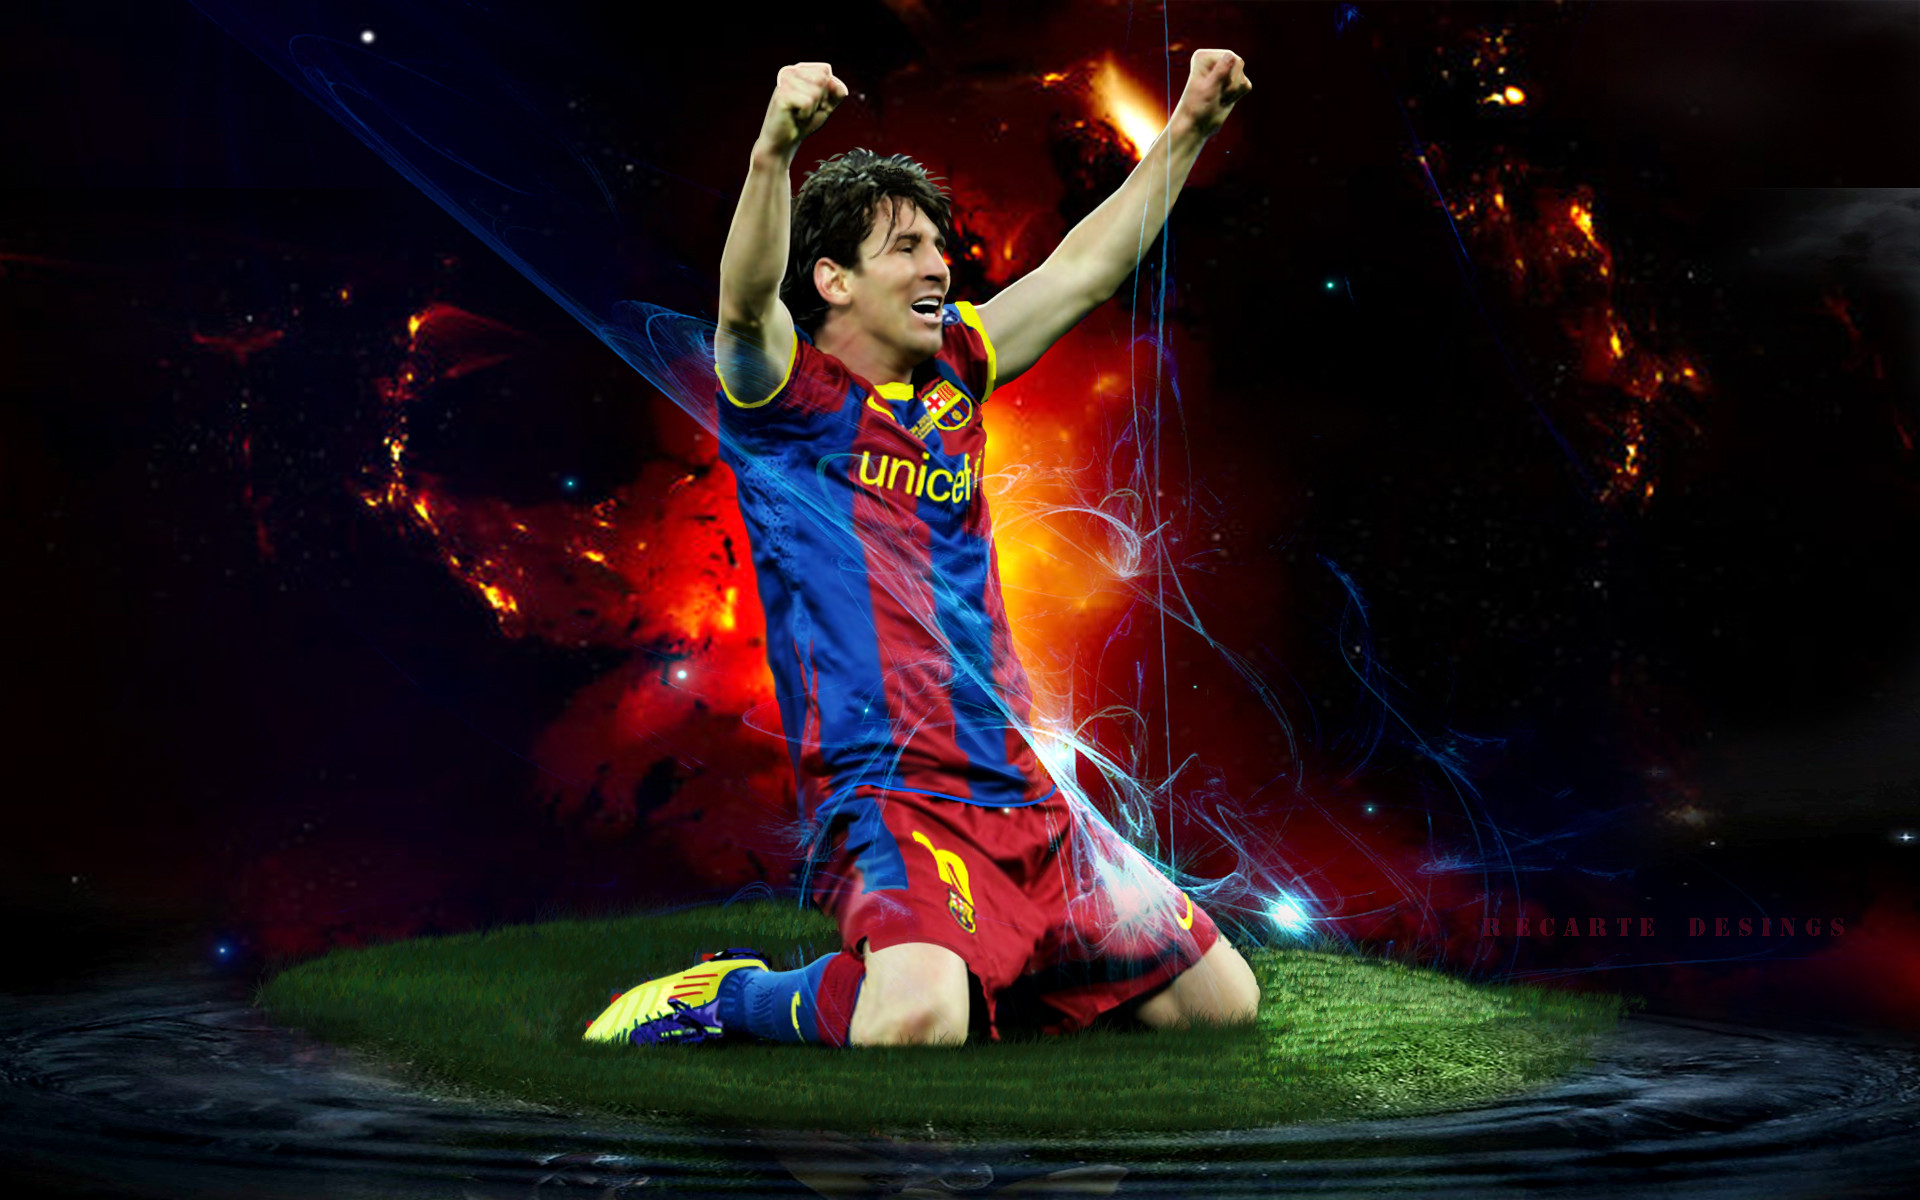 Download 40 Lionel Messi HD Wallpapers 1920x1200